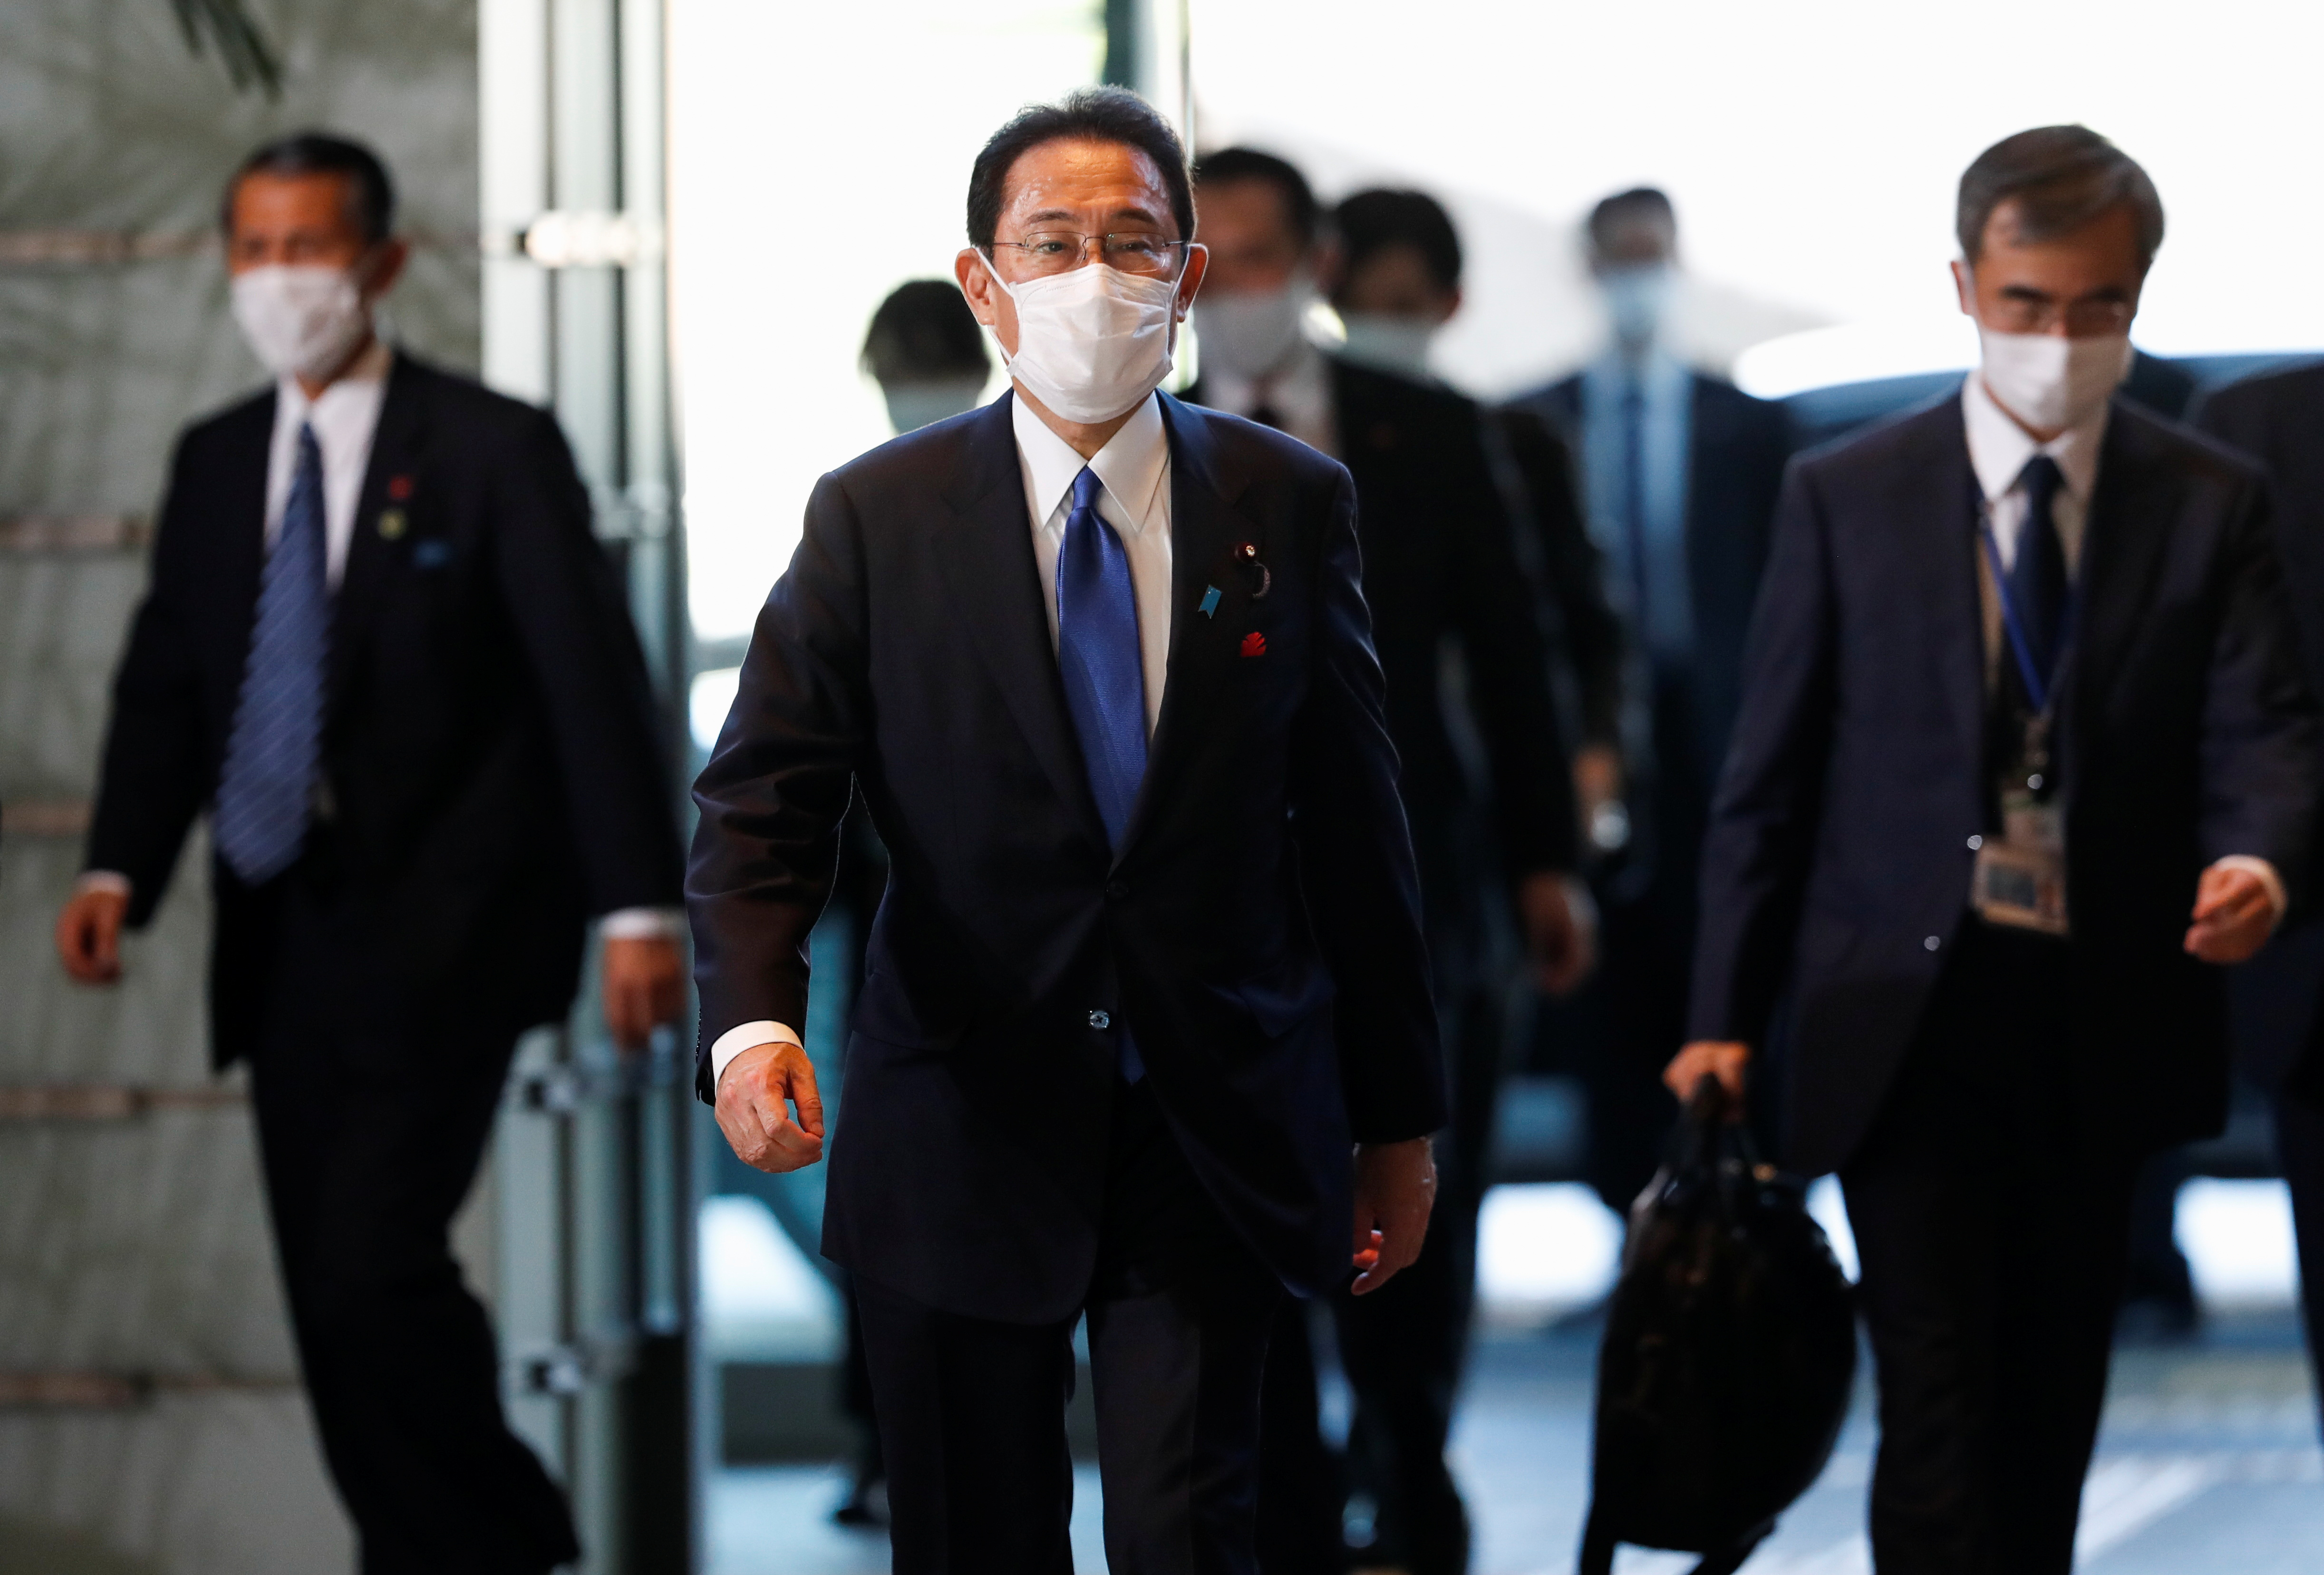 Japan's newly-elected Prime Minister Fumio Kishida arrives at his official residence in Tokyo, Japan October 4, 2021.  REUTERS/Issei Kato